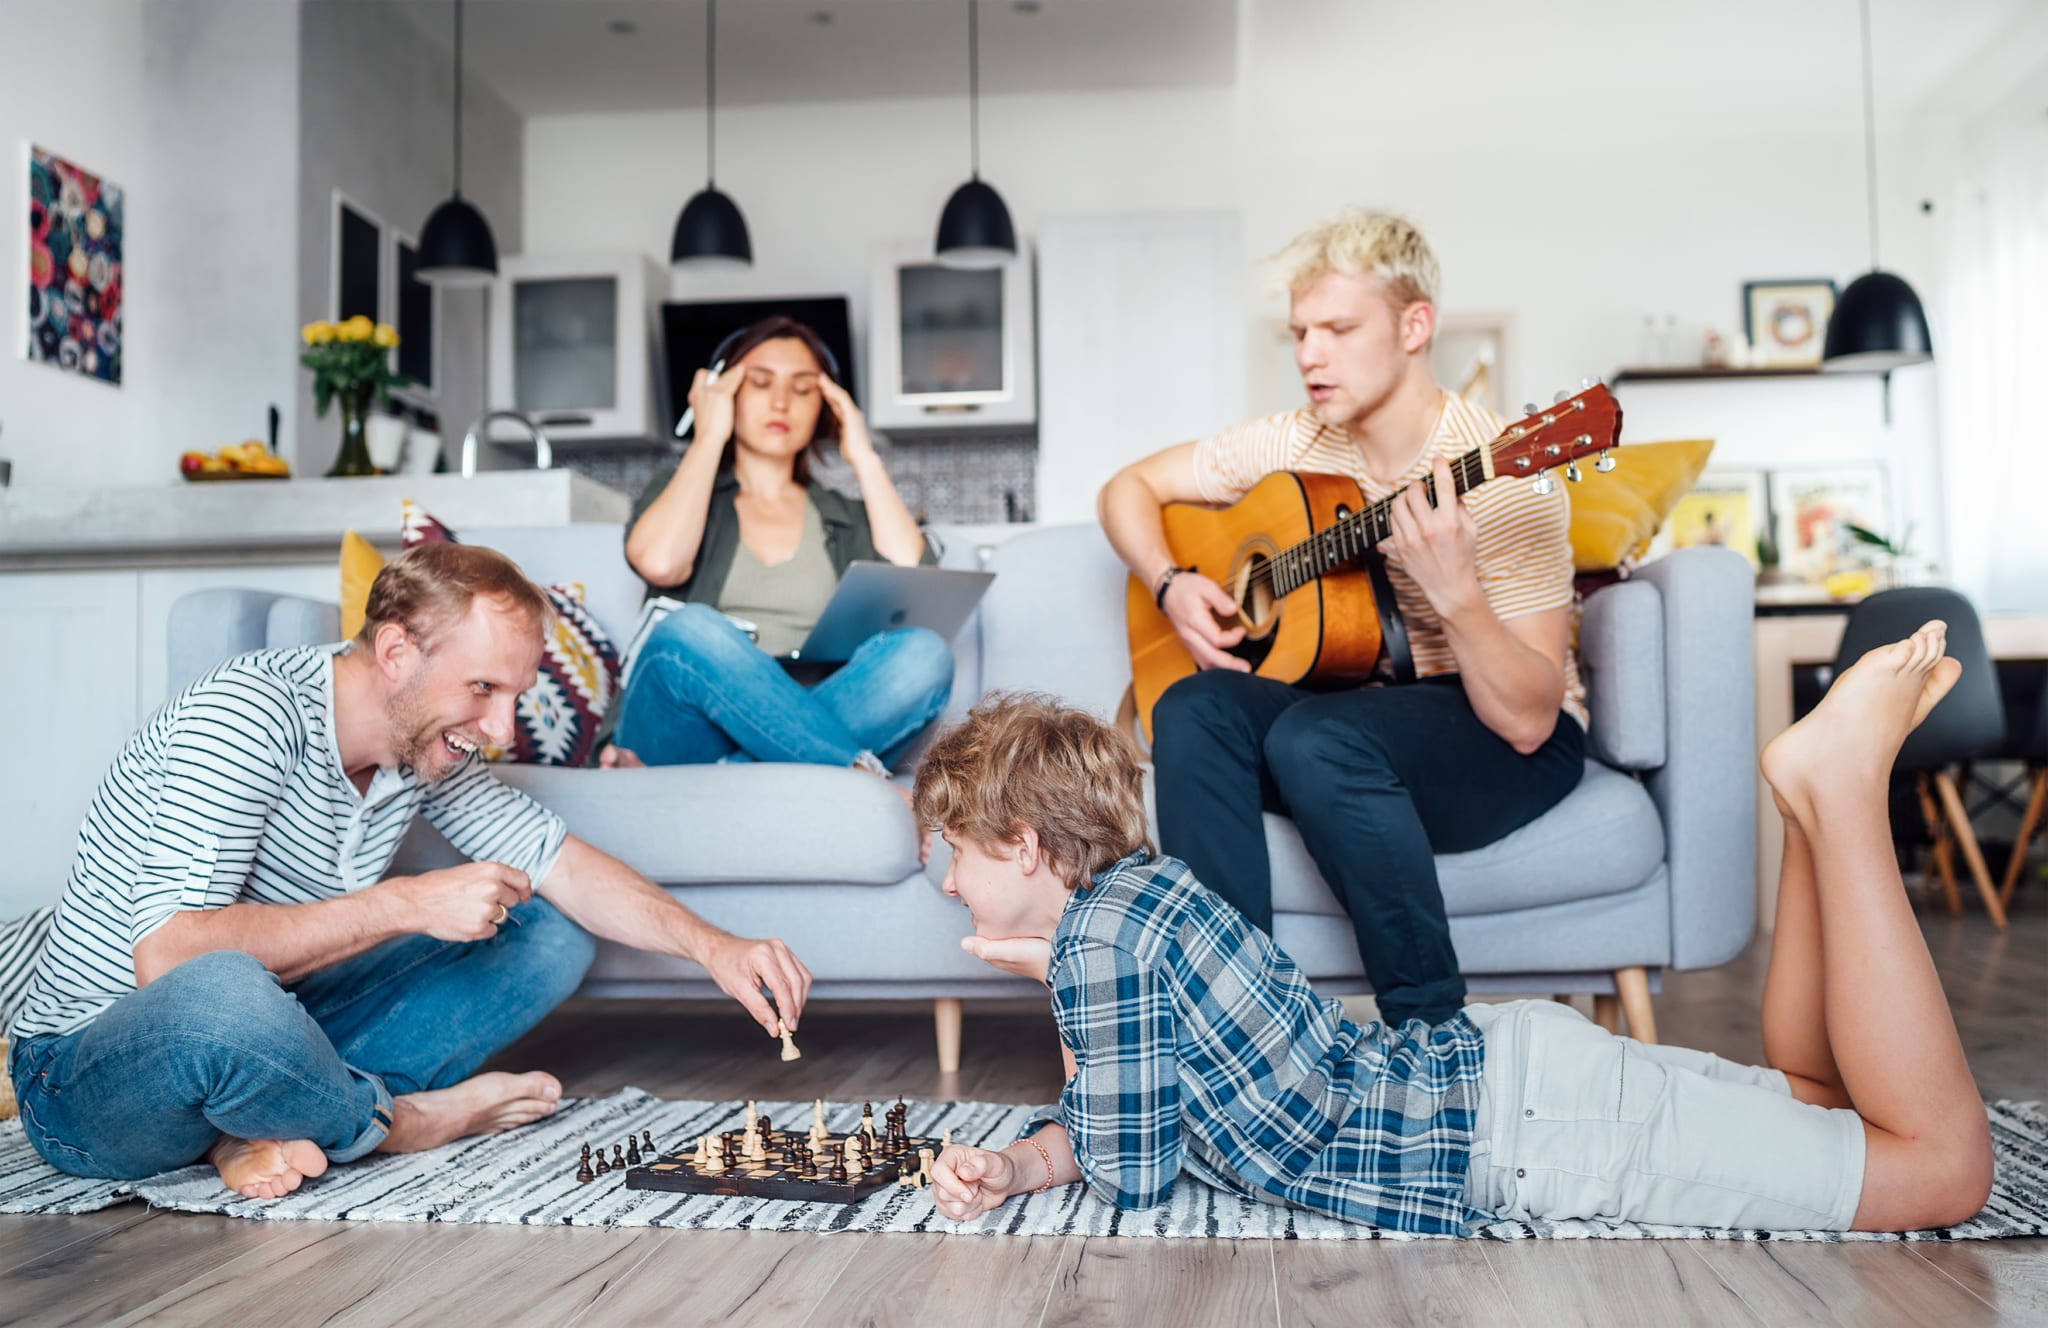 Image of four friends hanging out, one woman is one her laptop, the guy sitting next to her is playing his guitar. The other two friends are laying on the floor playing a game of chess.